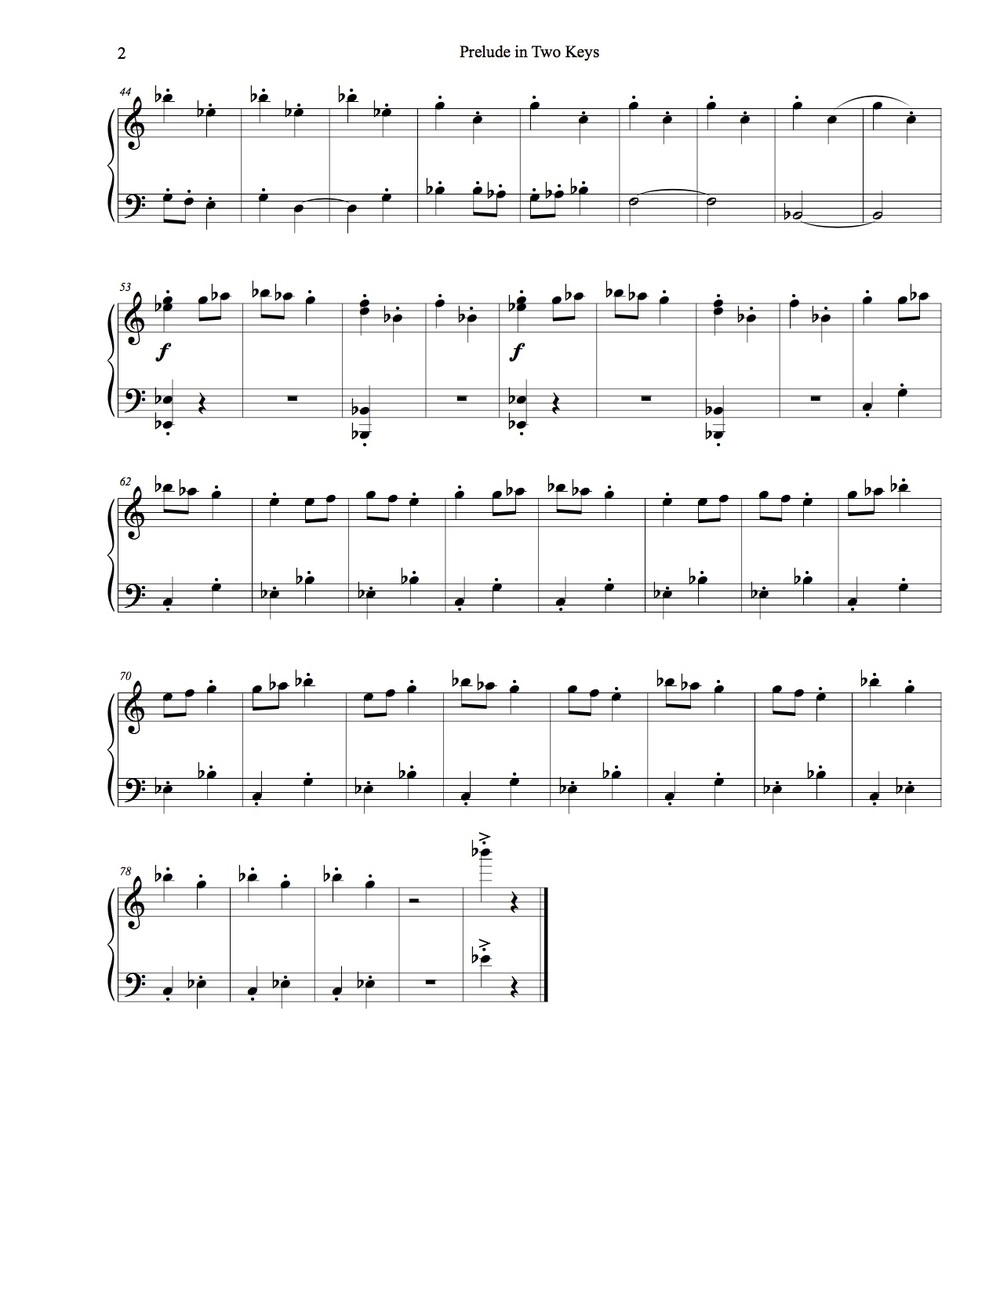 Prelude in Two Keys2.jpg